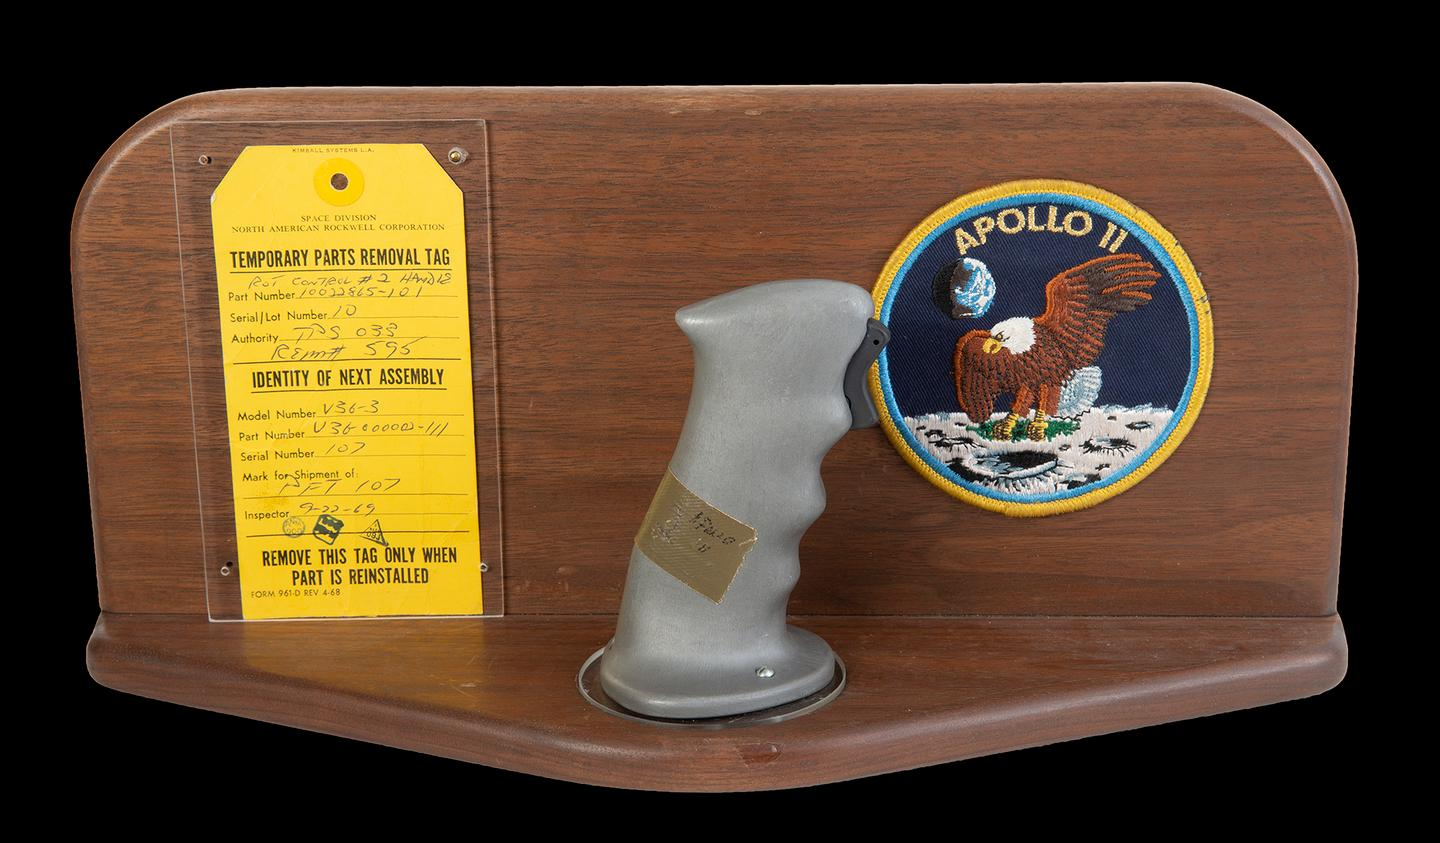 The Apollo 11 Rotational Hand Control from Neil Armstrong's station